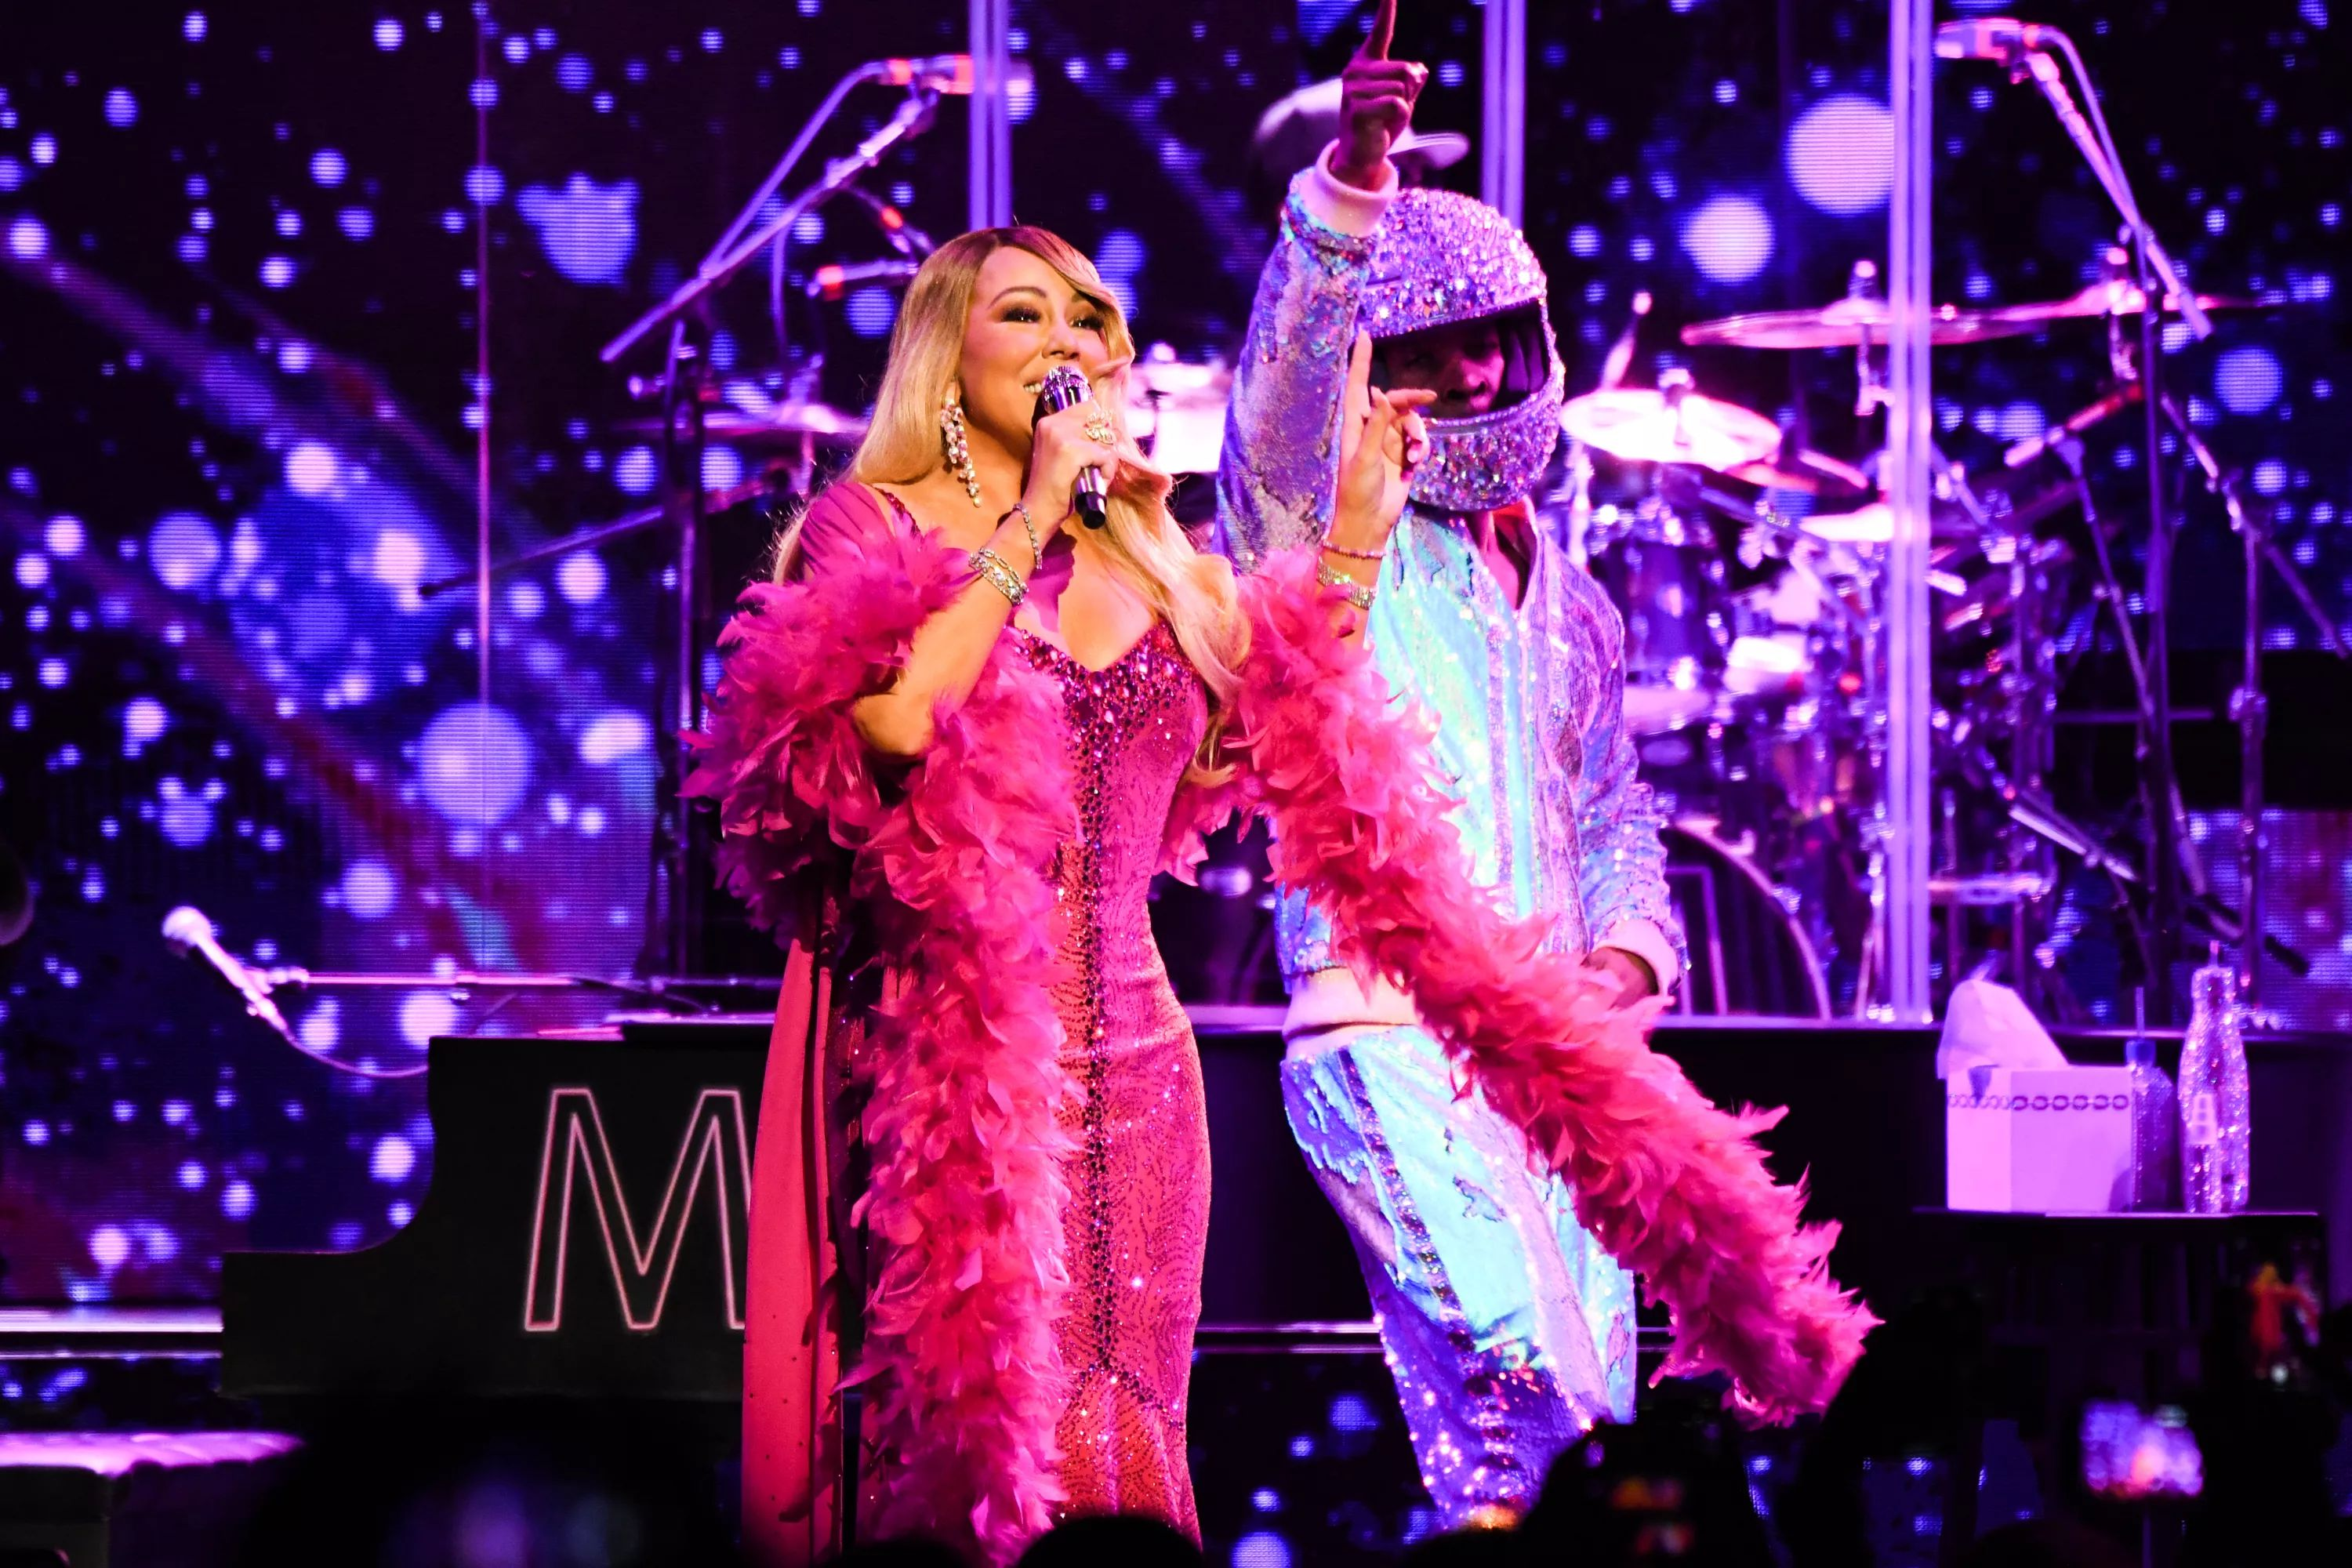 ATLANTA, GEORGIA - MARCH 05: Mariah Carey performs onstage during the the Caution World Tour at Fox Theater on March 05, 2019 in Atlanta, Georgia.